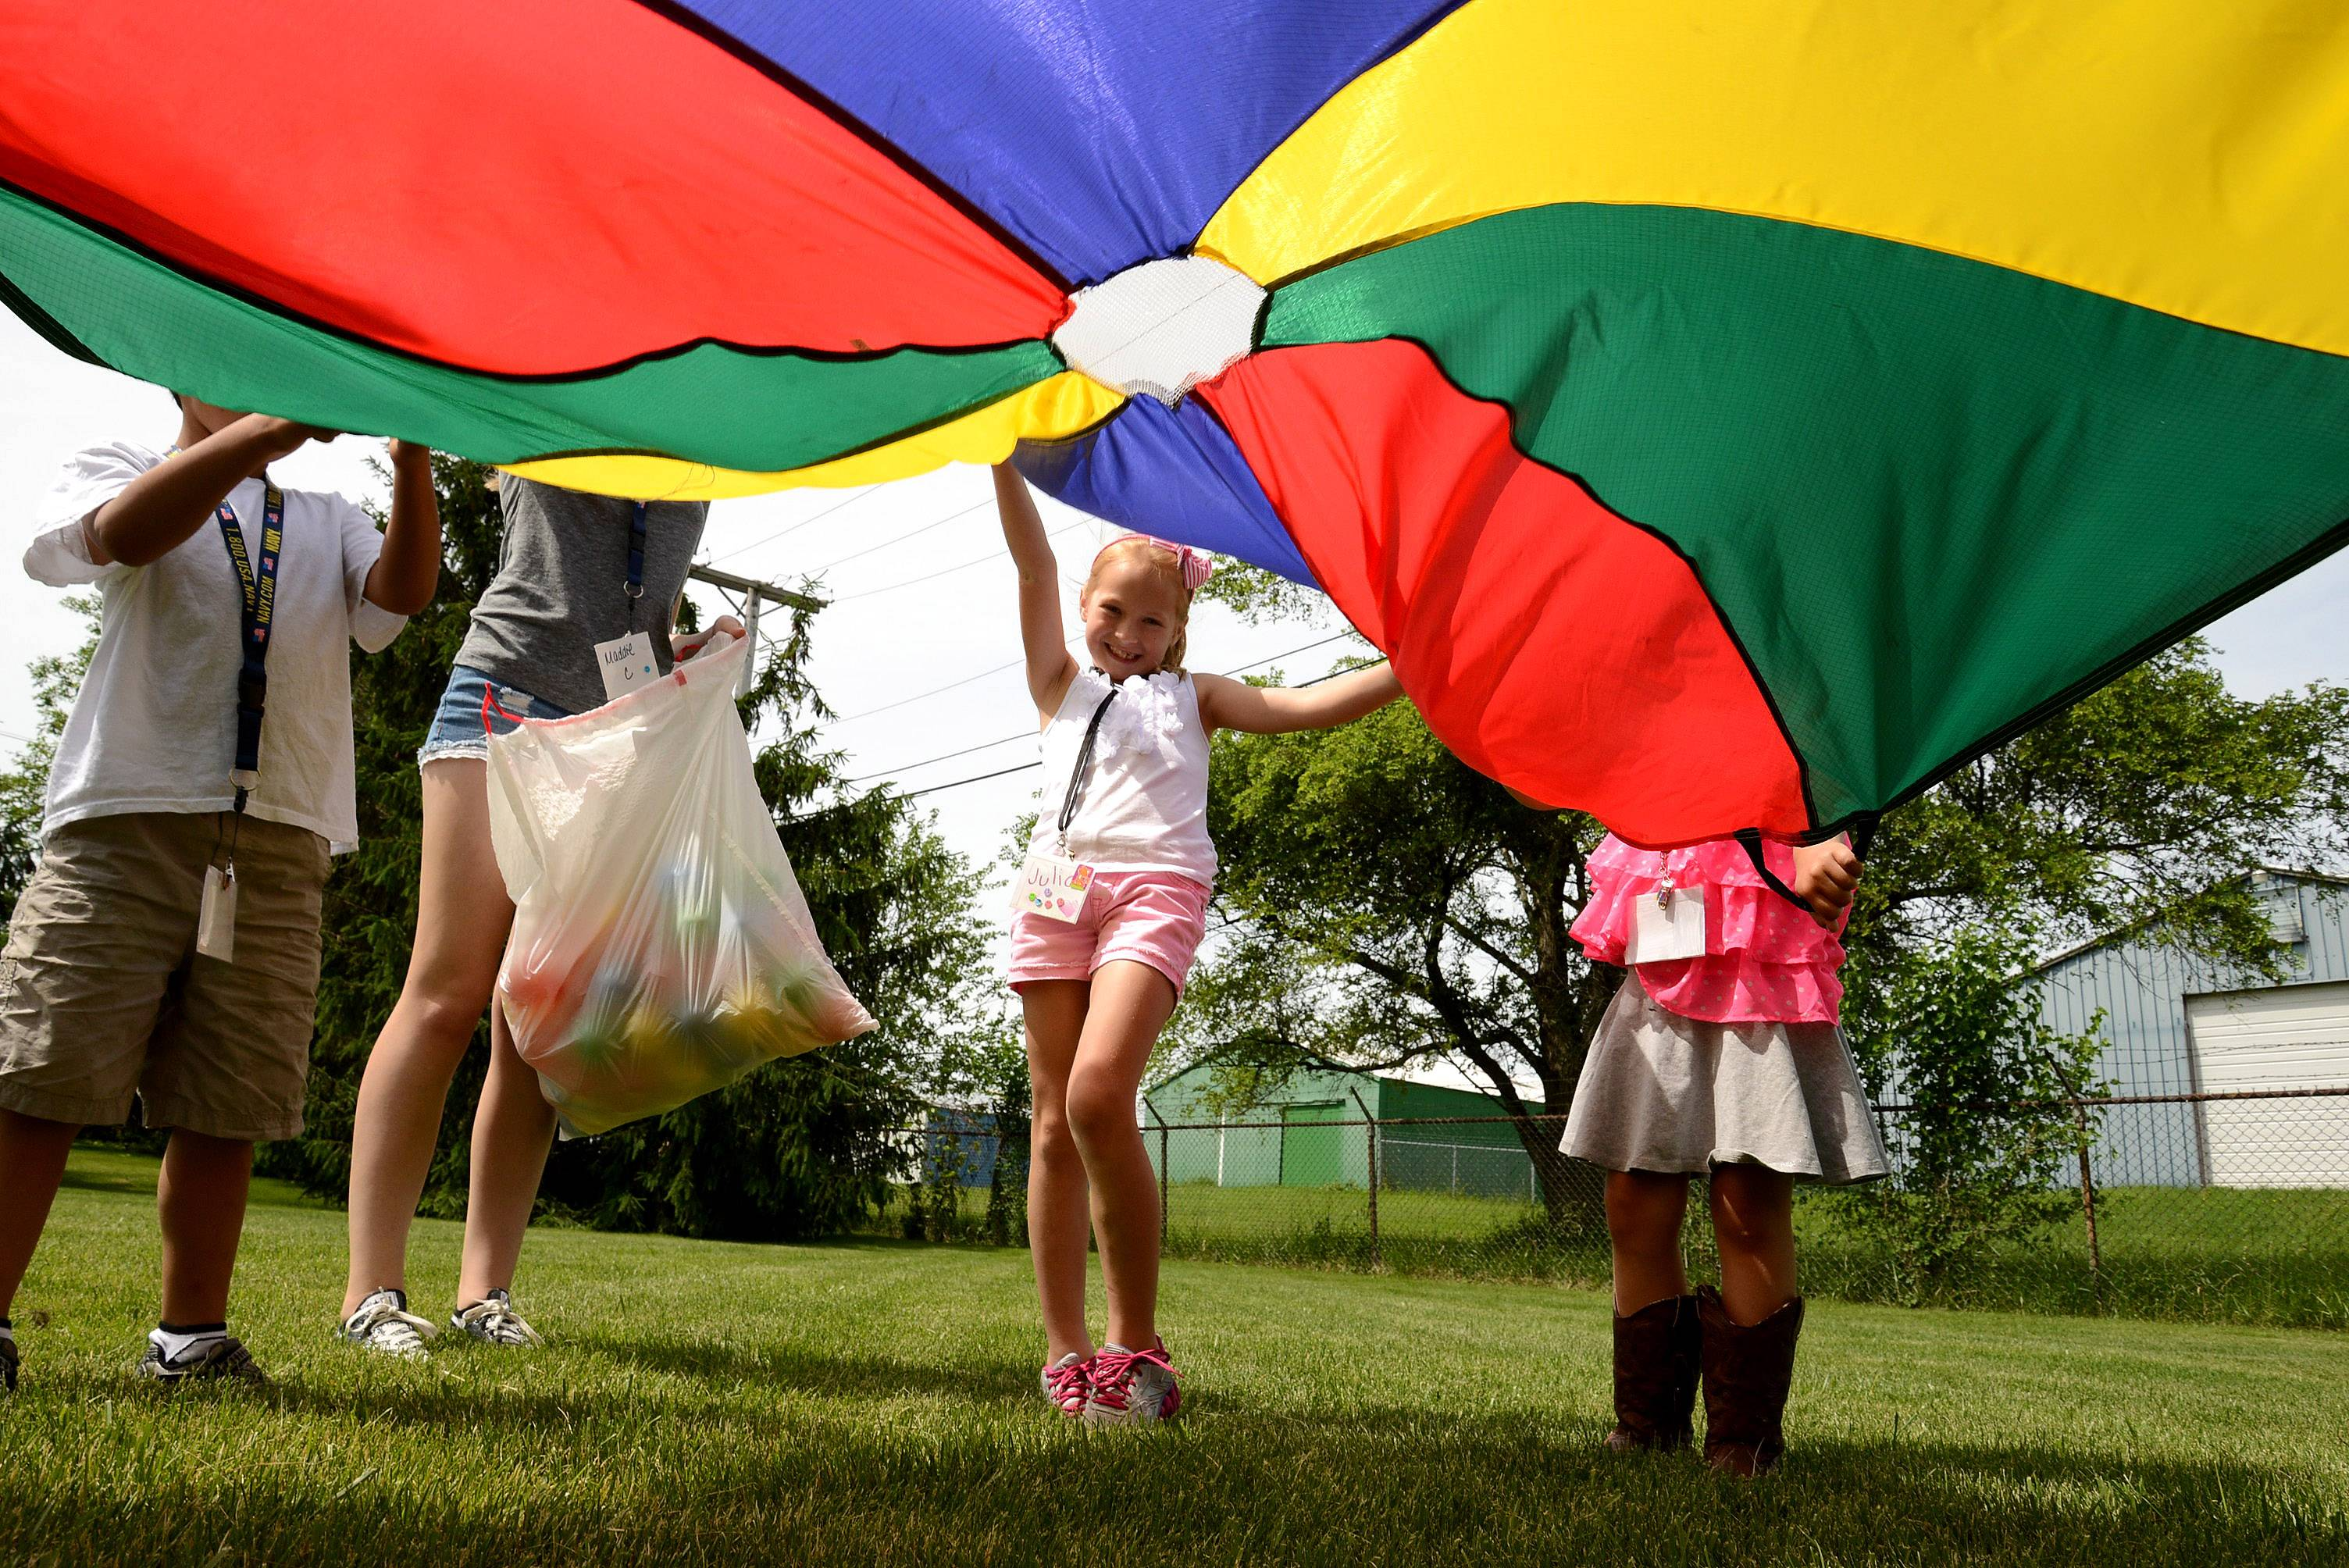 Julia Blasinski, 7, Lindenhurst, participates in the parachute activity during the 4-H Health Rocks Summer Day Camp at the University of Illinois Extension in Grayslake. The camp runs through Wednesday.